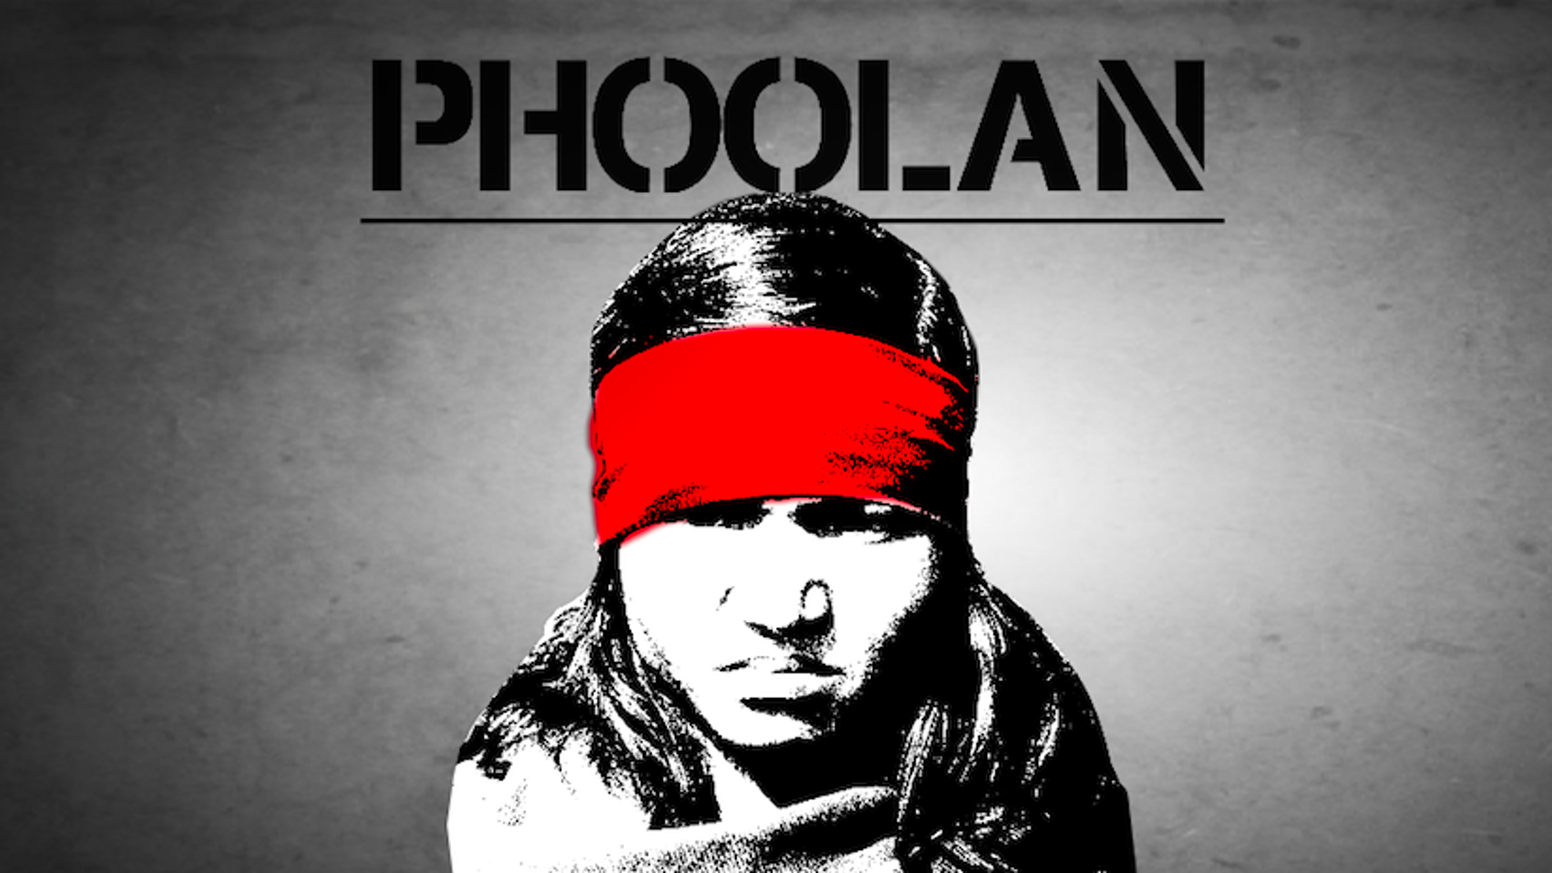 We still need your  support! Please visit the PHOOLAN website by clicking the donate button below.. The road to finish a documentary  of this caliber is long and hard, and we are so close! Grateful for all of  you!